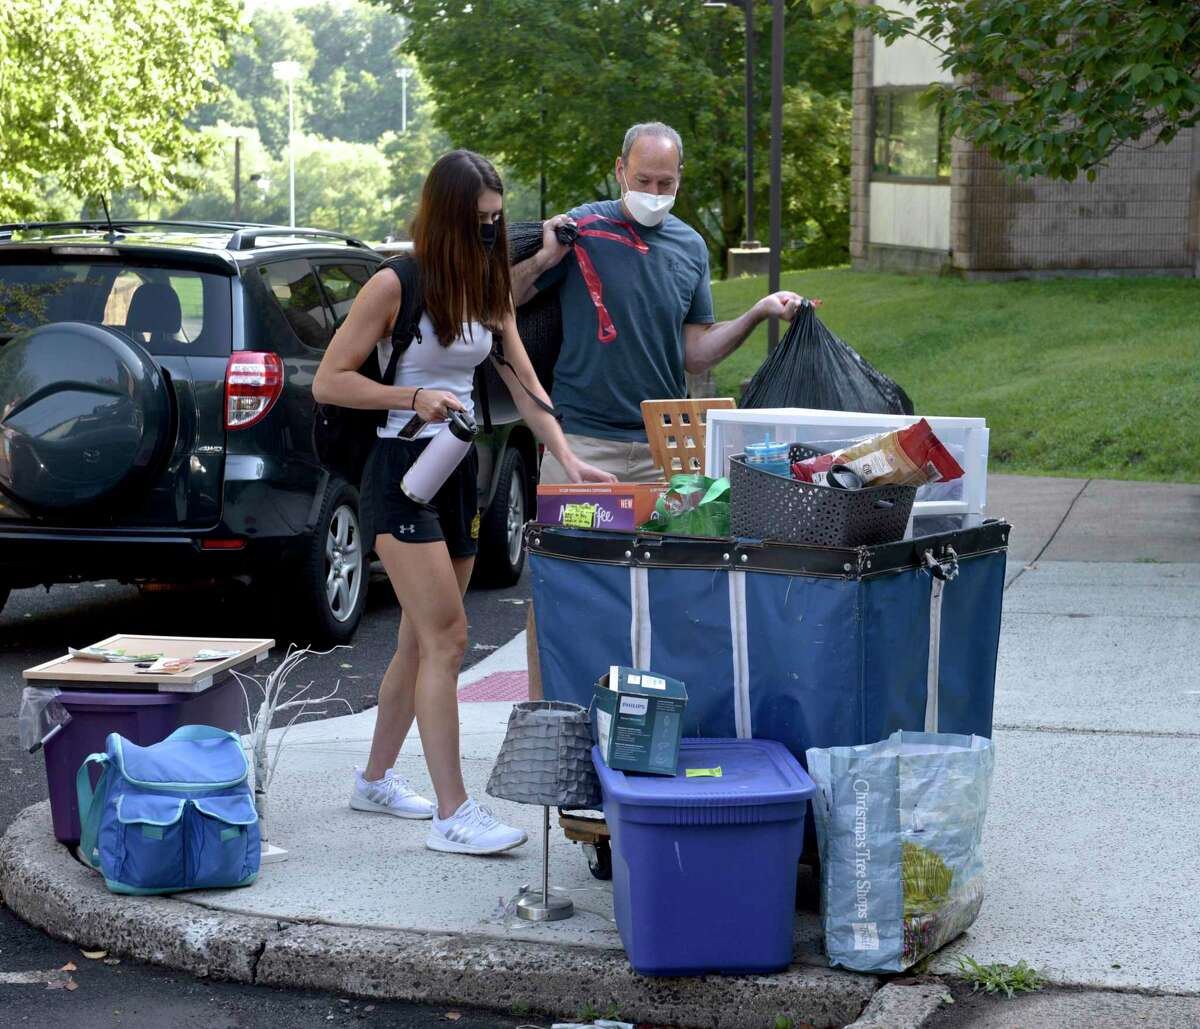 Kalynna Hauser, of Orange, a junior nursing student, left, gets help from her father Greg Hauser moving into her Western Connecticut State University westside campus dorm. Tuesday, August 24, 2021, Danbury, Conn.